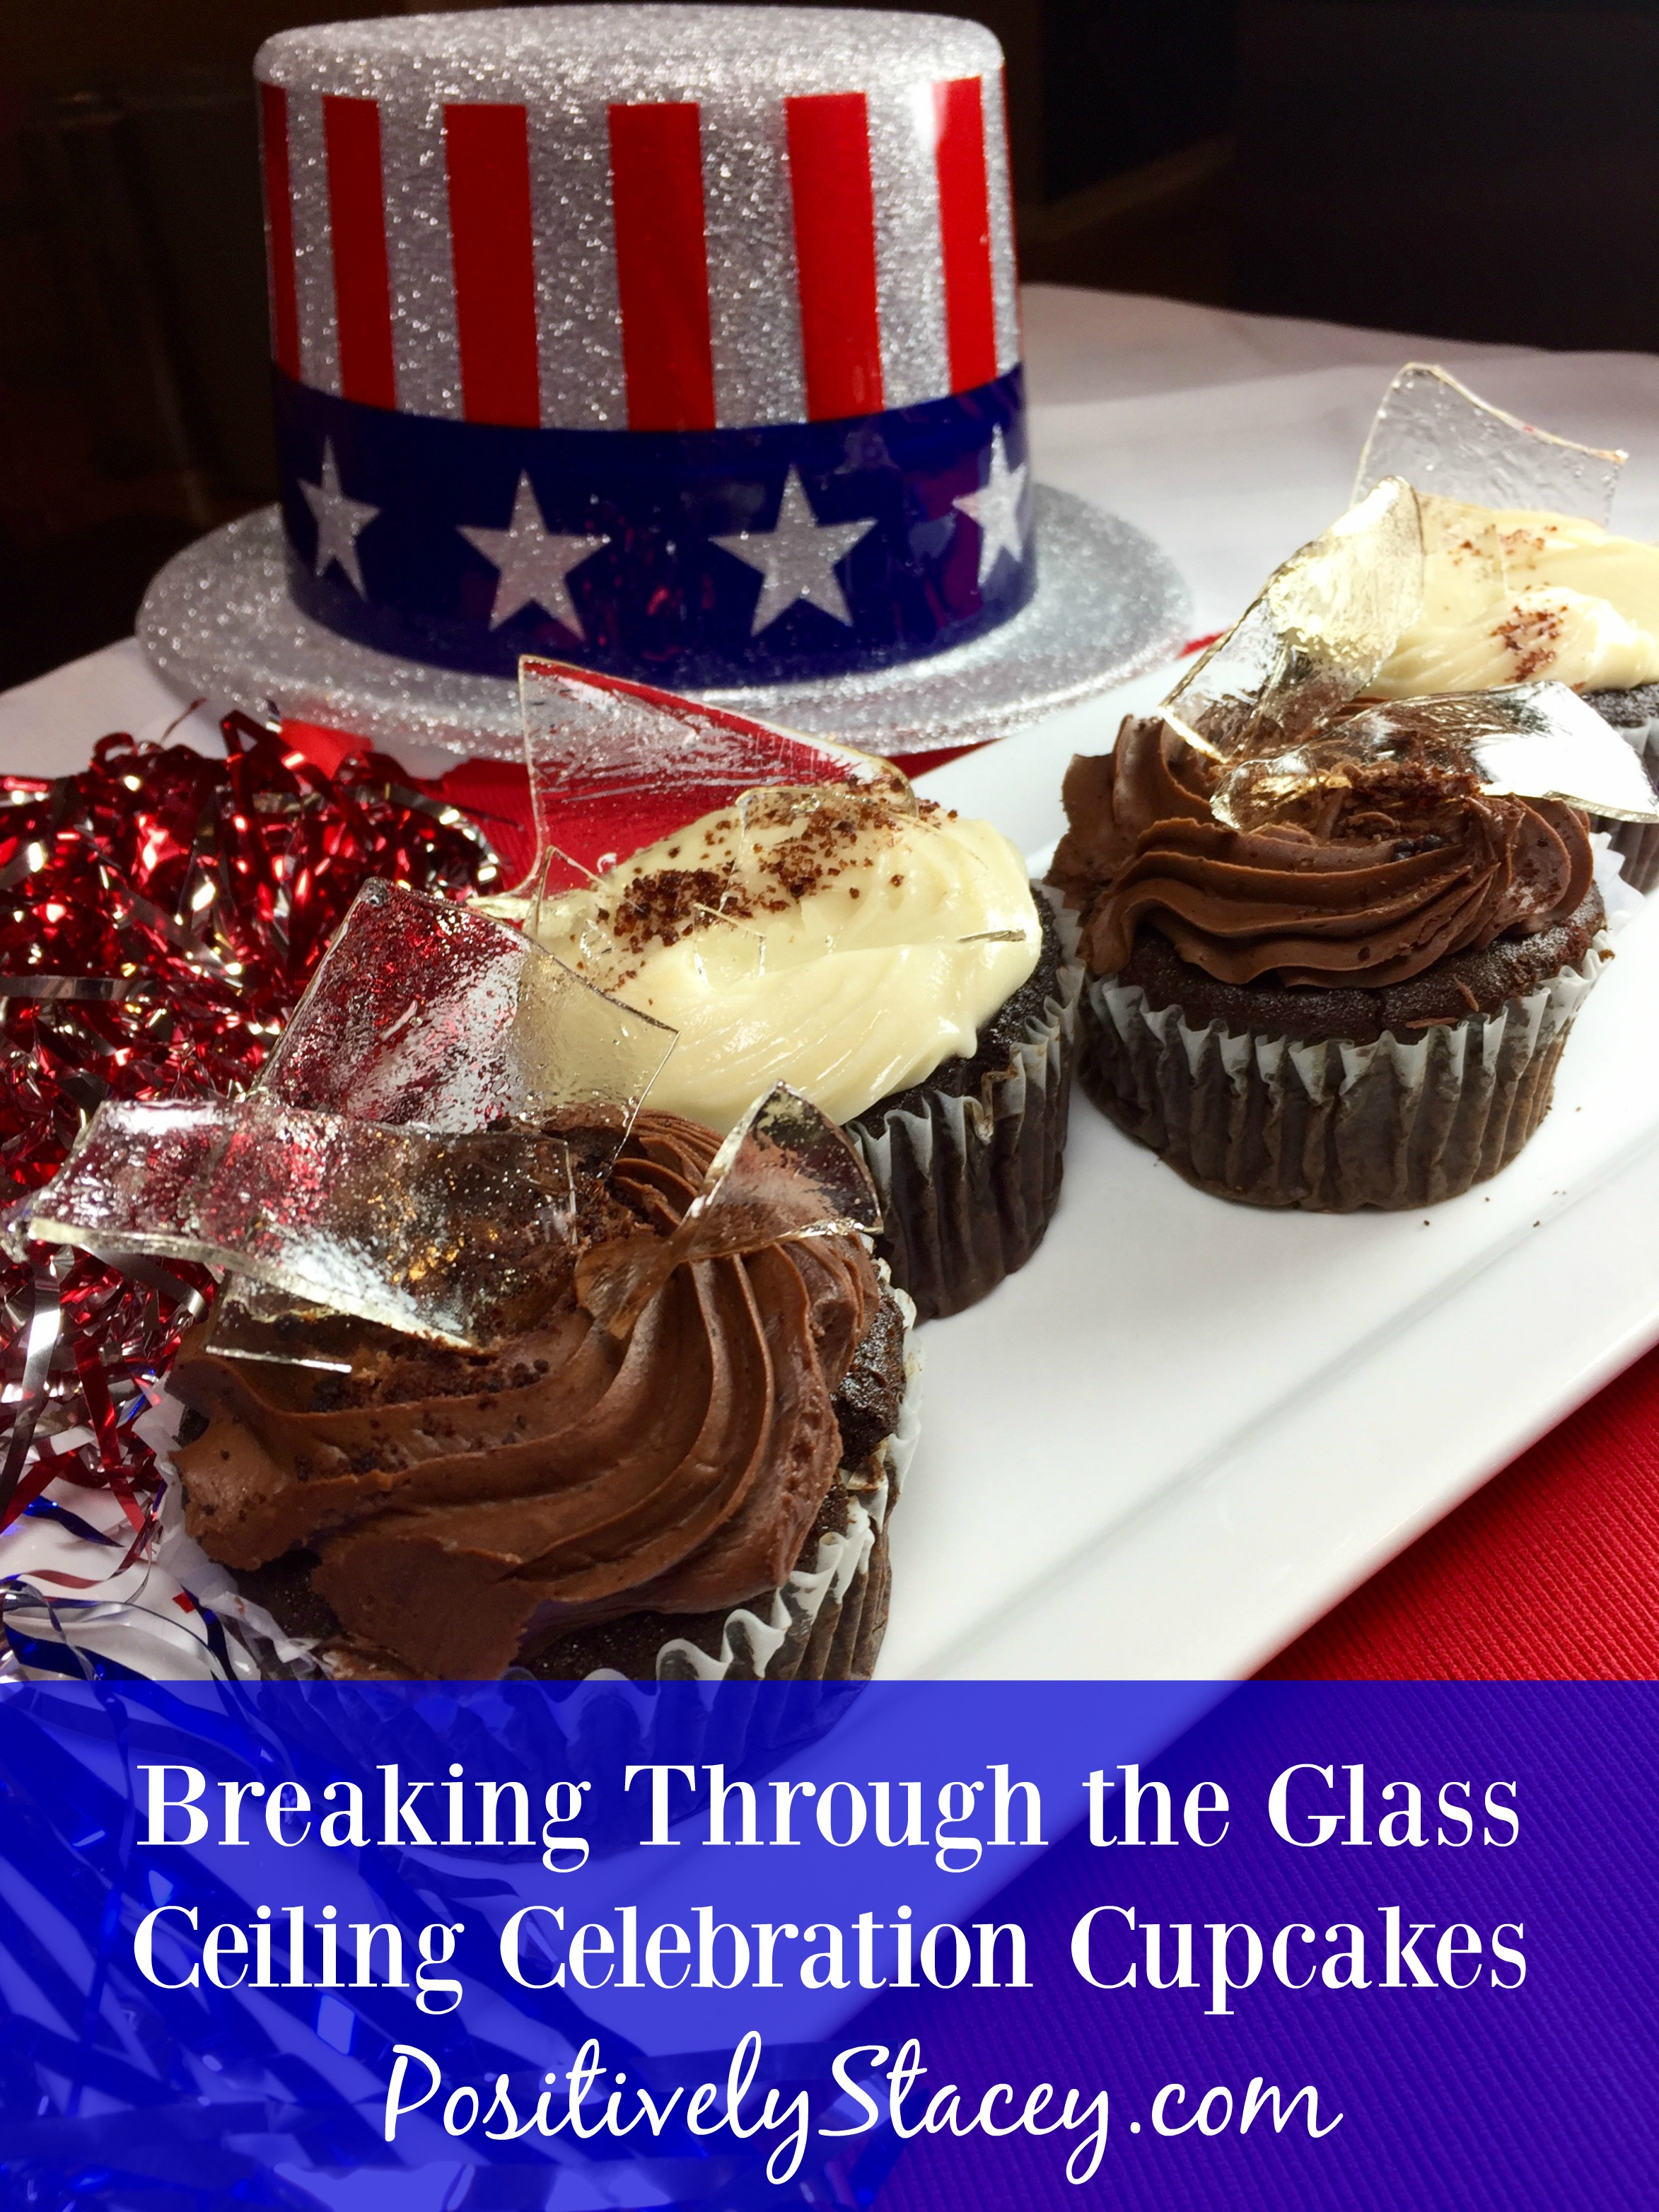 breaking-through-the-glass-ceiling-celebration-cupcakes